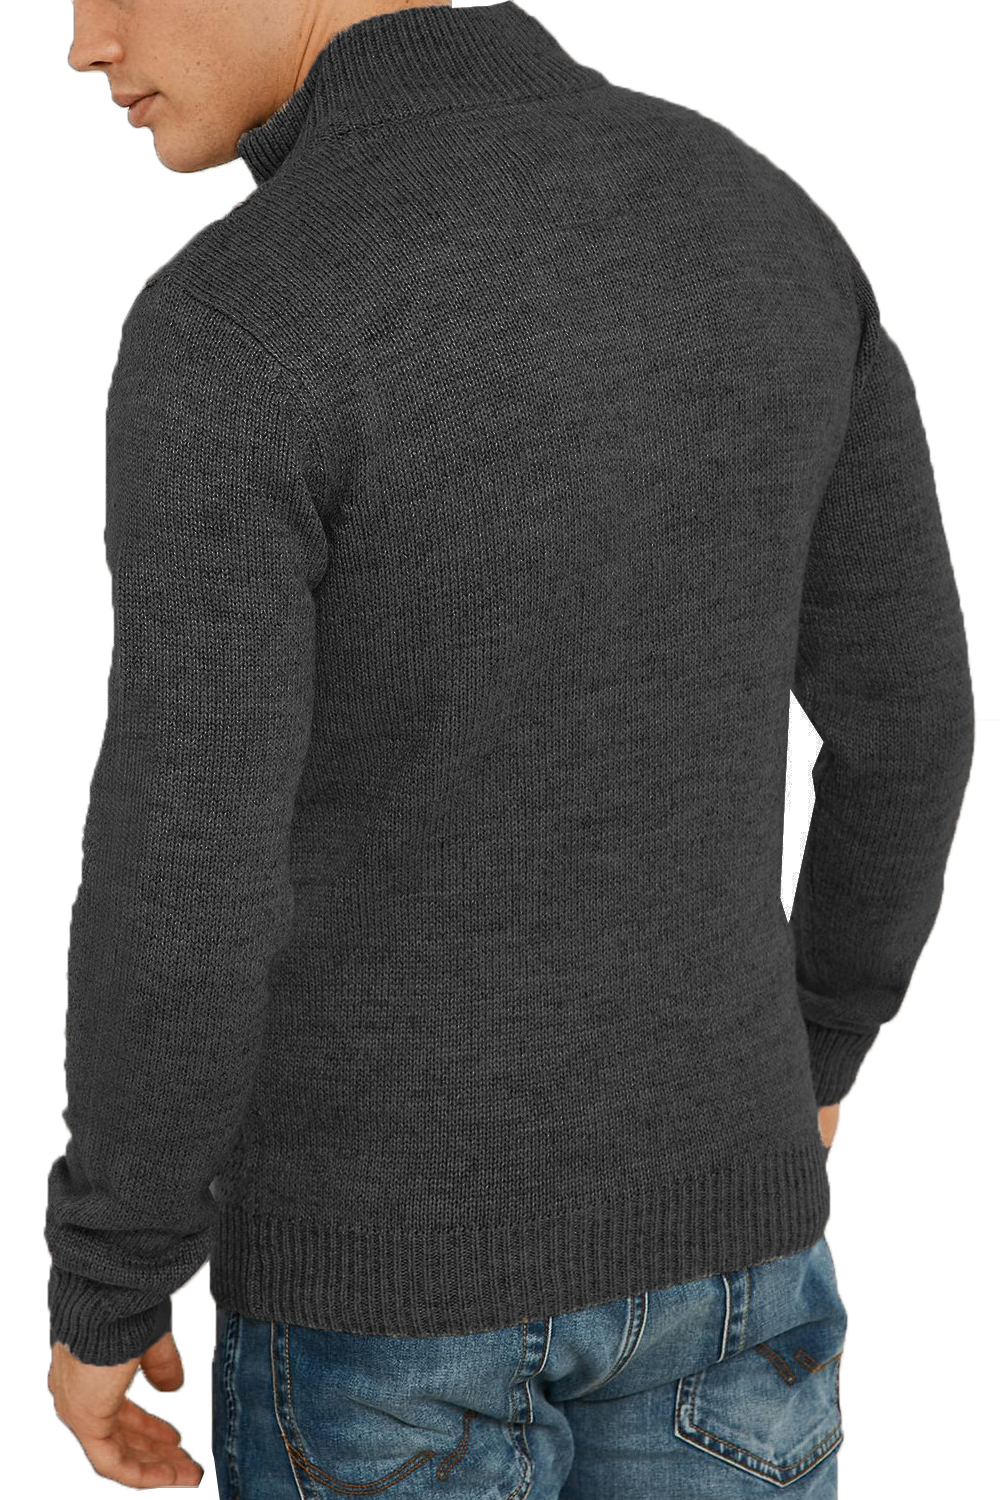 Threadbare-Wray-Mens-Top-Cable-Knited-Designer-Luxurious-Wool-Mix-Raglan-Jumpers thumbnail 4